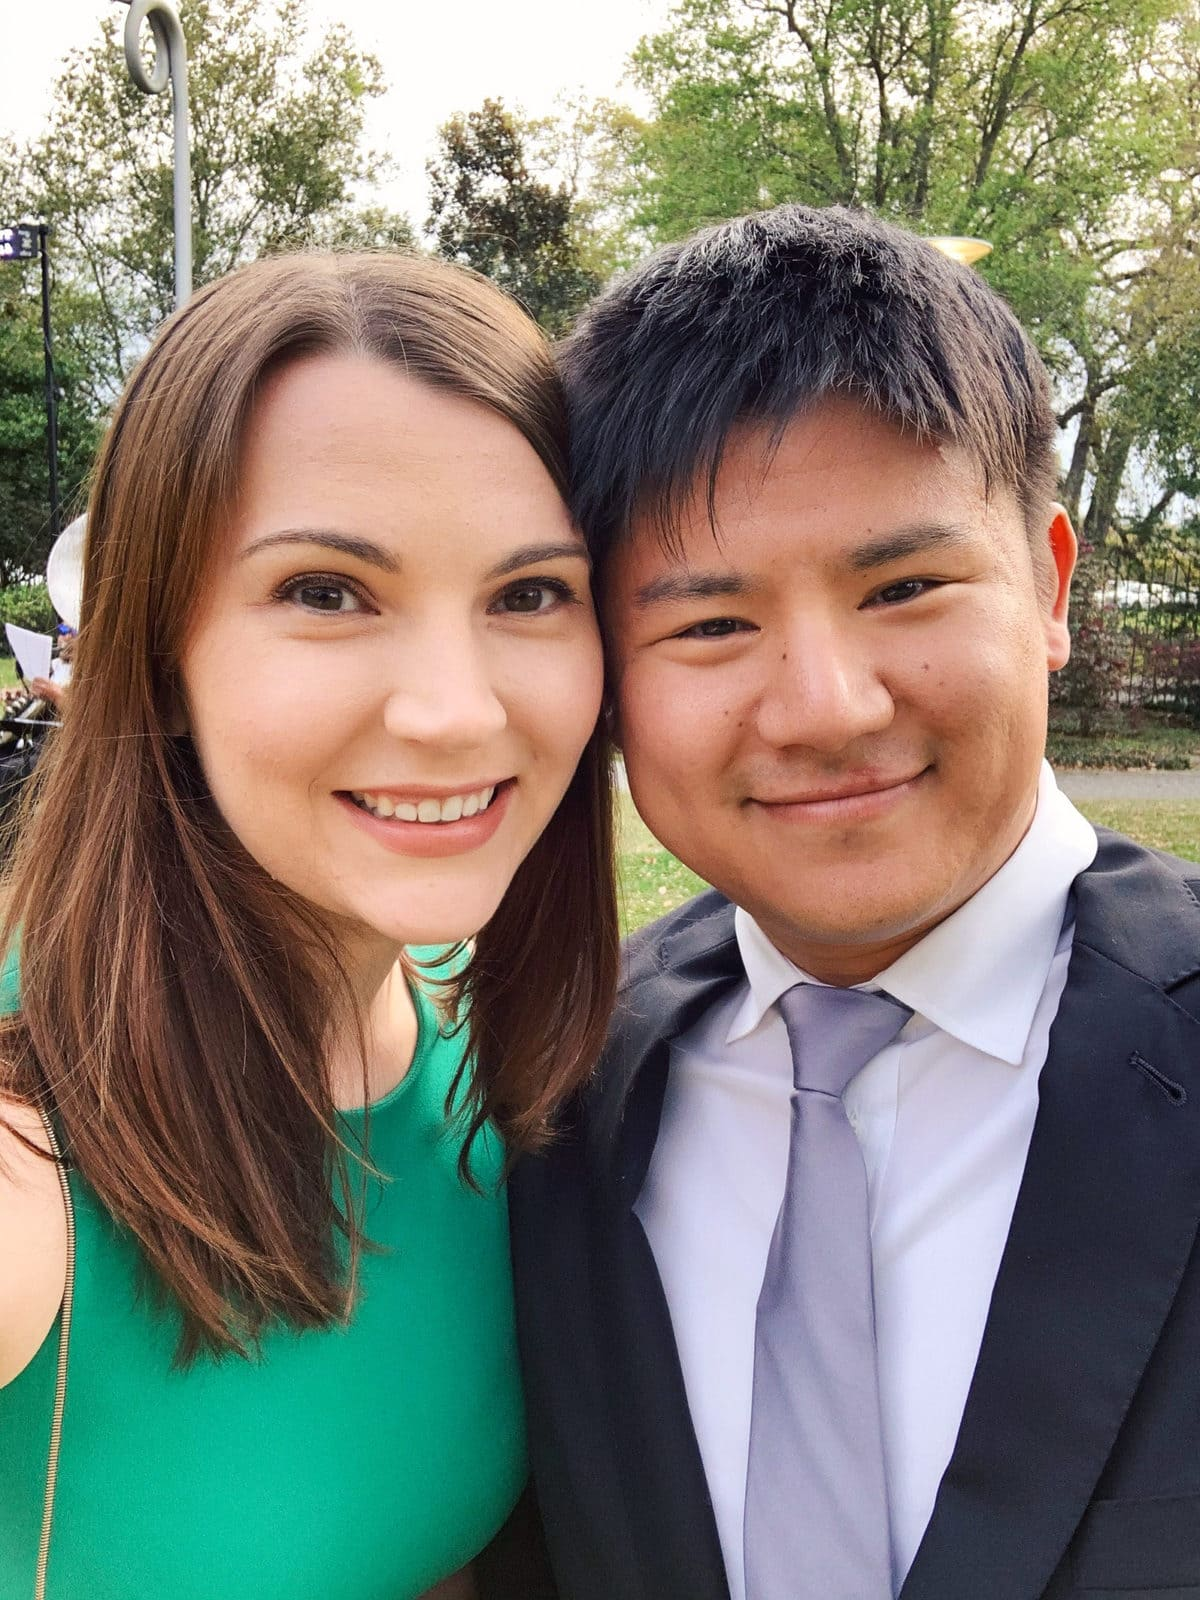 Leslie and Kyle at Wedding